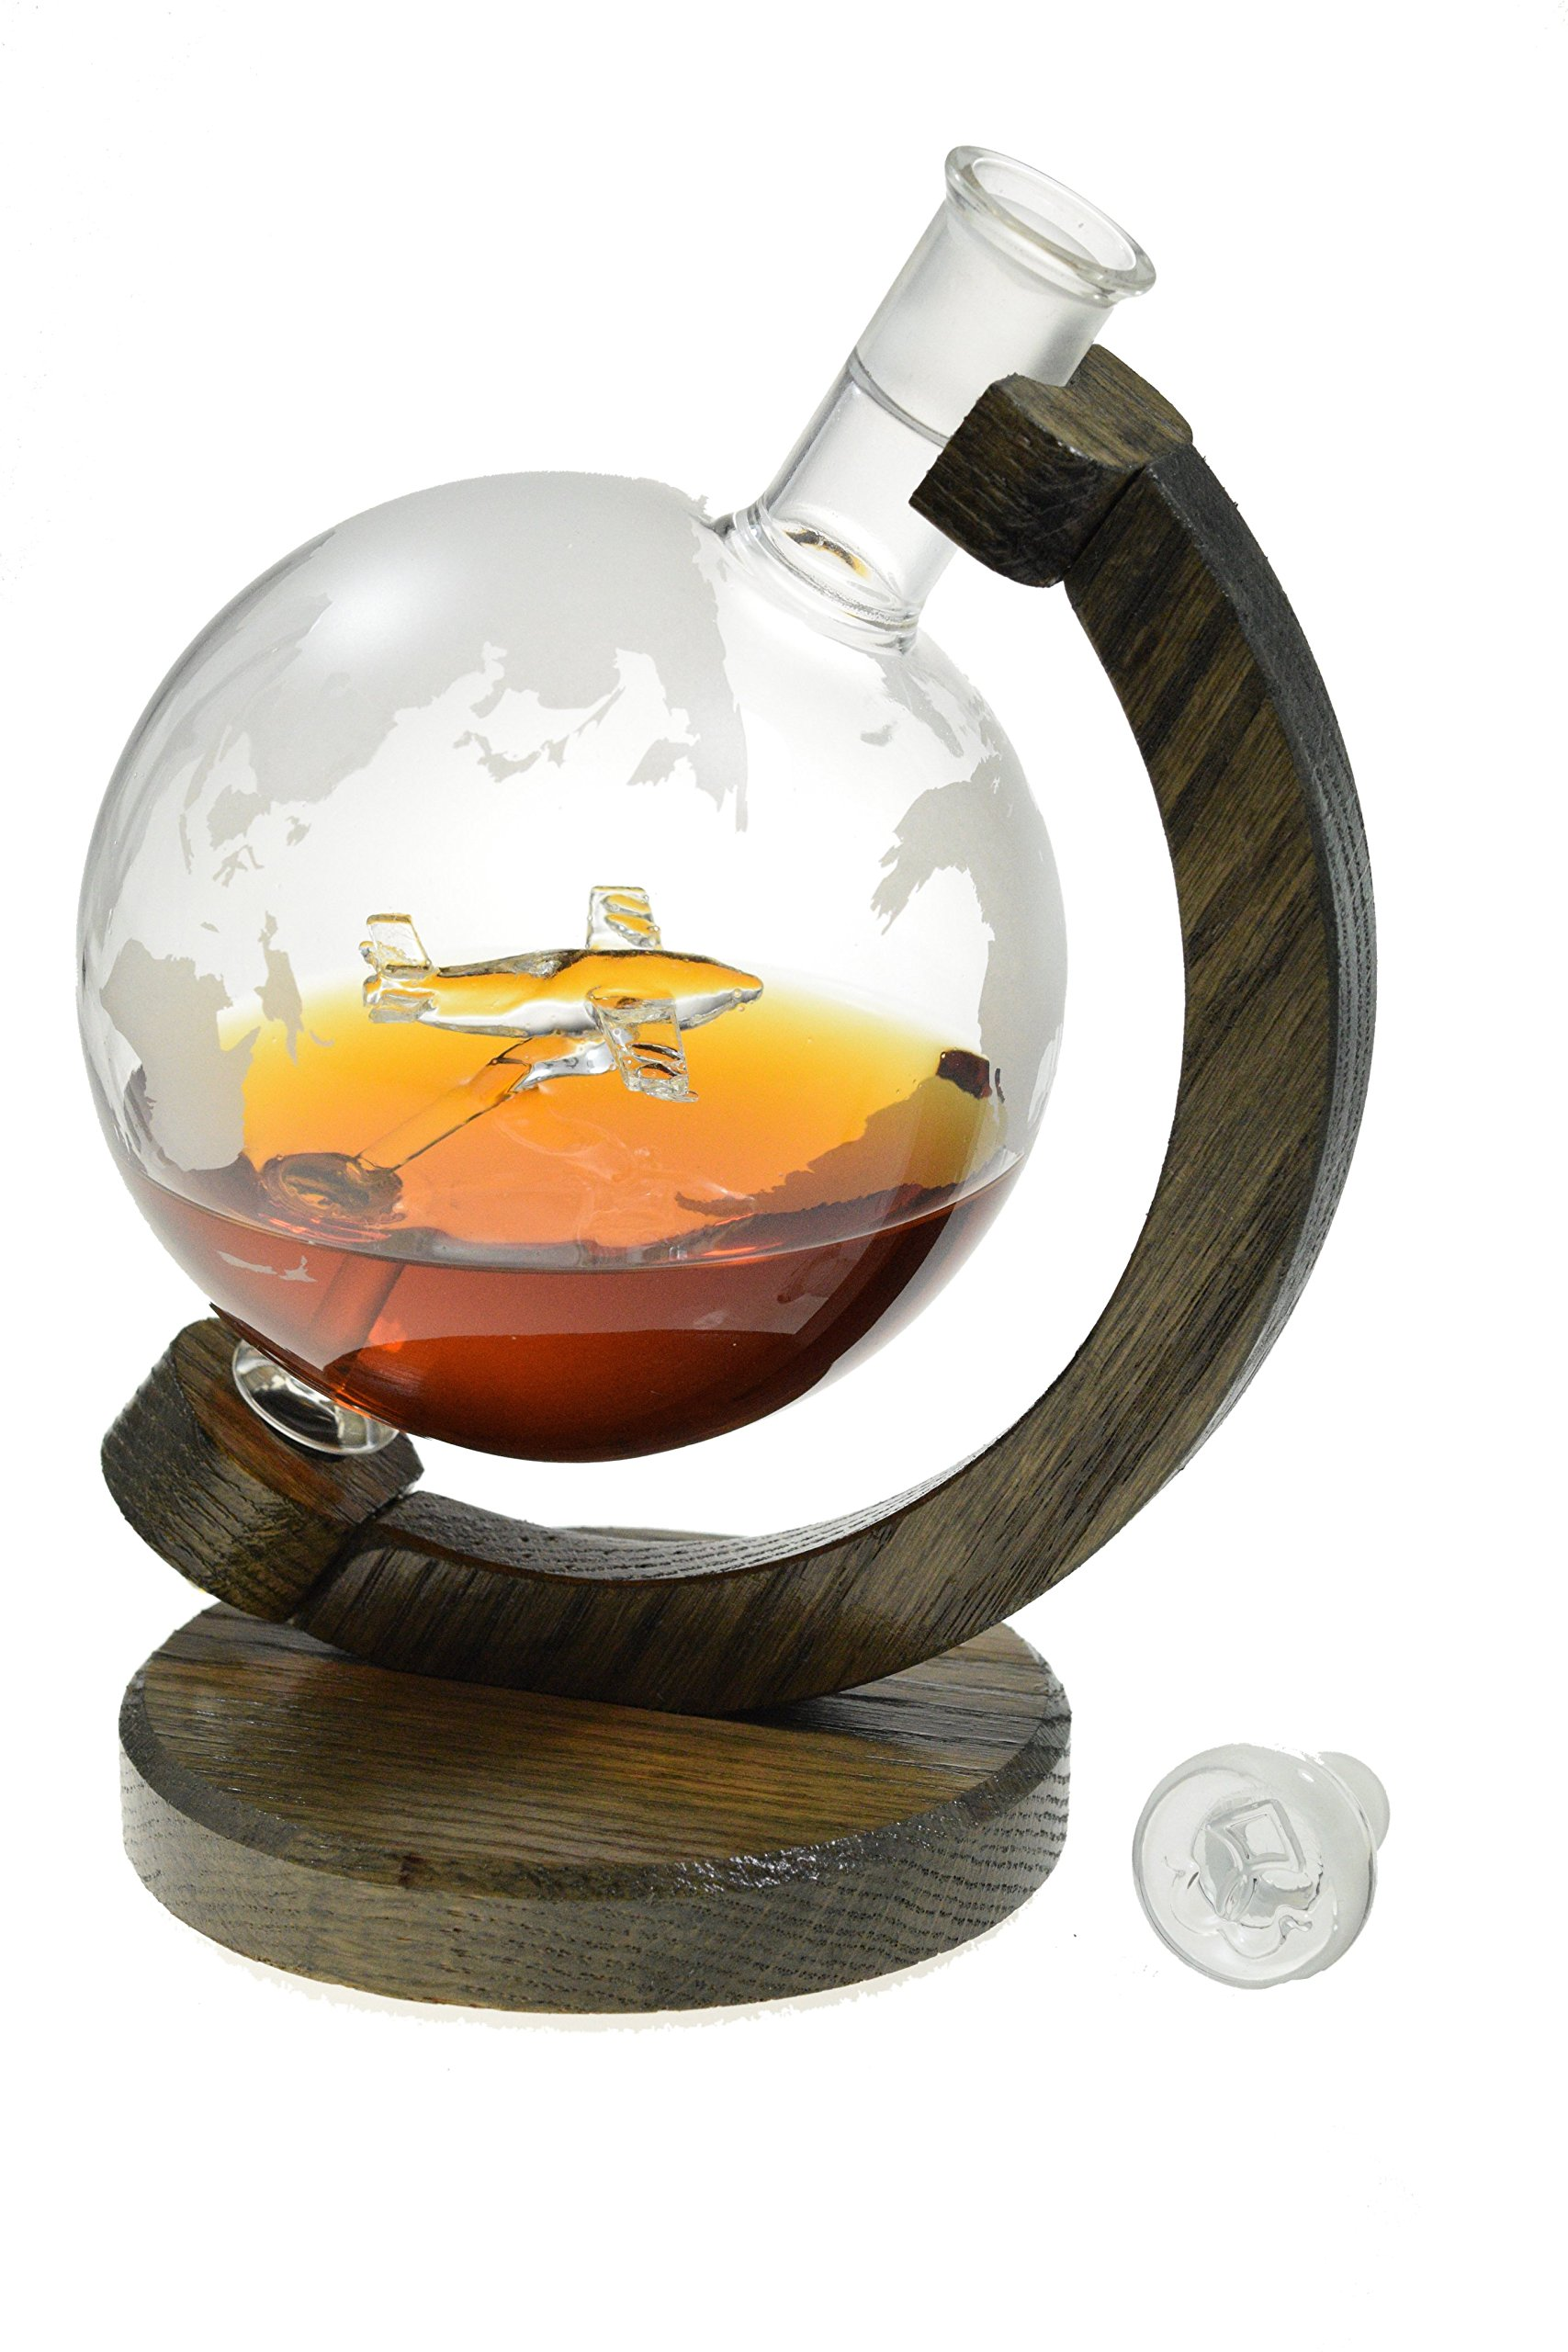 Etched Globe Liquor Decanter with C-130 - Scotch Whiskey Decanter - 1000ml Decanter for Vodka, Bourbon, Rum, Wine, Tequila - (C-130 - Prestige Decanters)